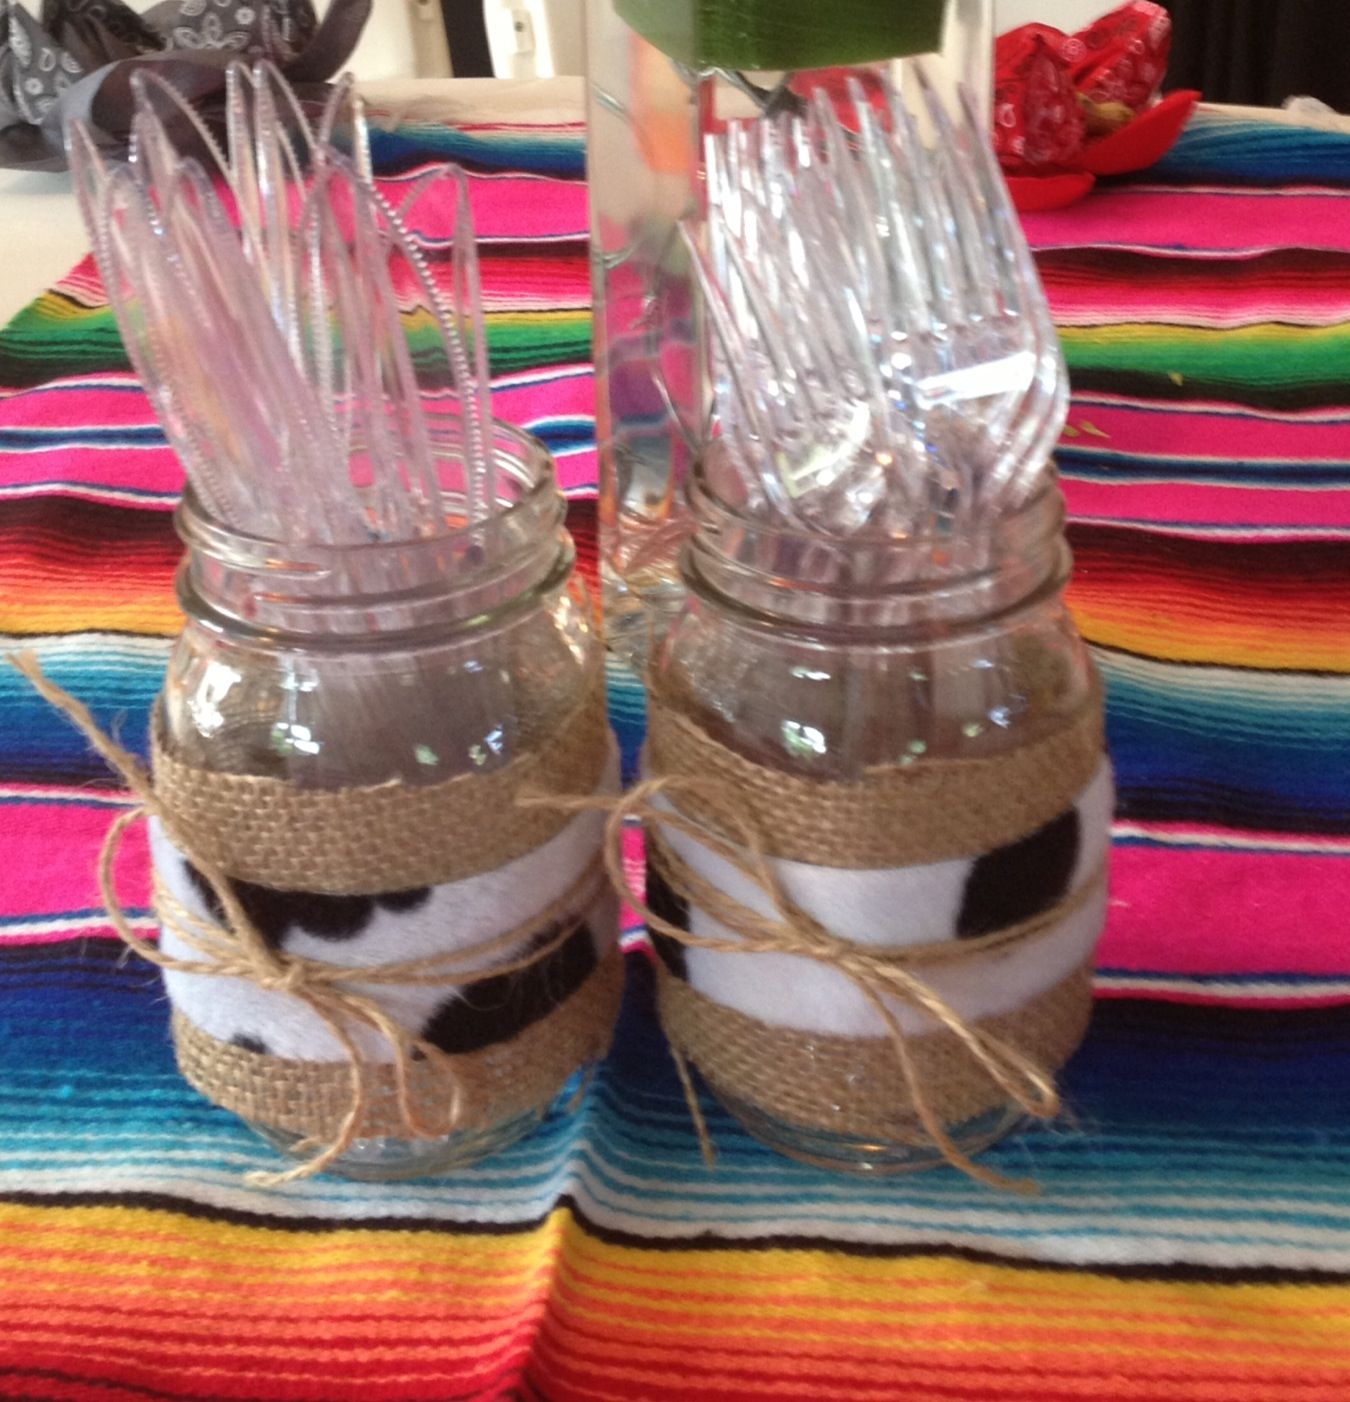 Western, Cowboy, Mexican, Mason Jars Great For hold forks, spoons, knife, candles, napkins, flowers, candies, etc.... $6.00  via Etsy shop/hautecrafts4u or hautecrafts4u@gmail.com